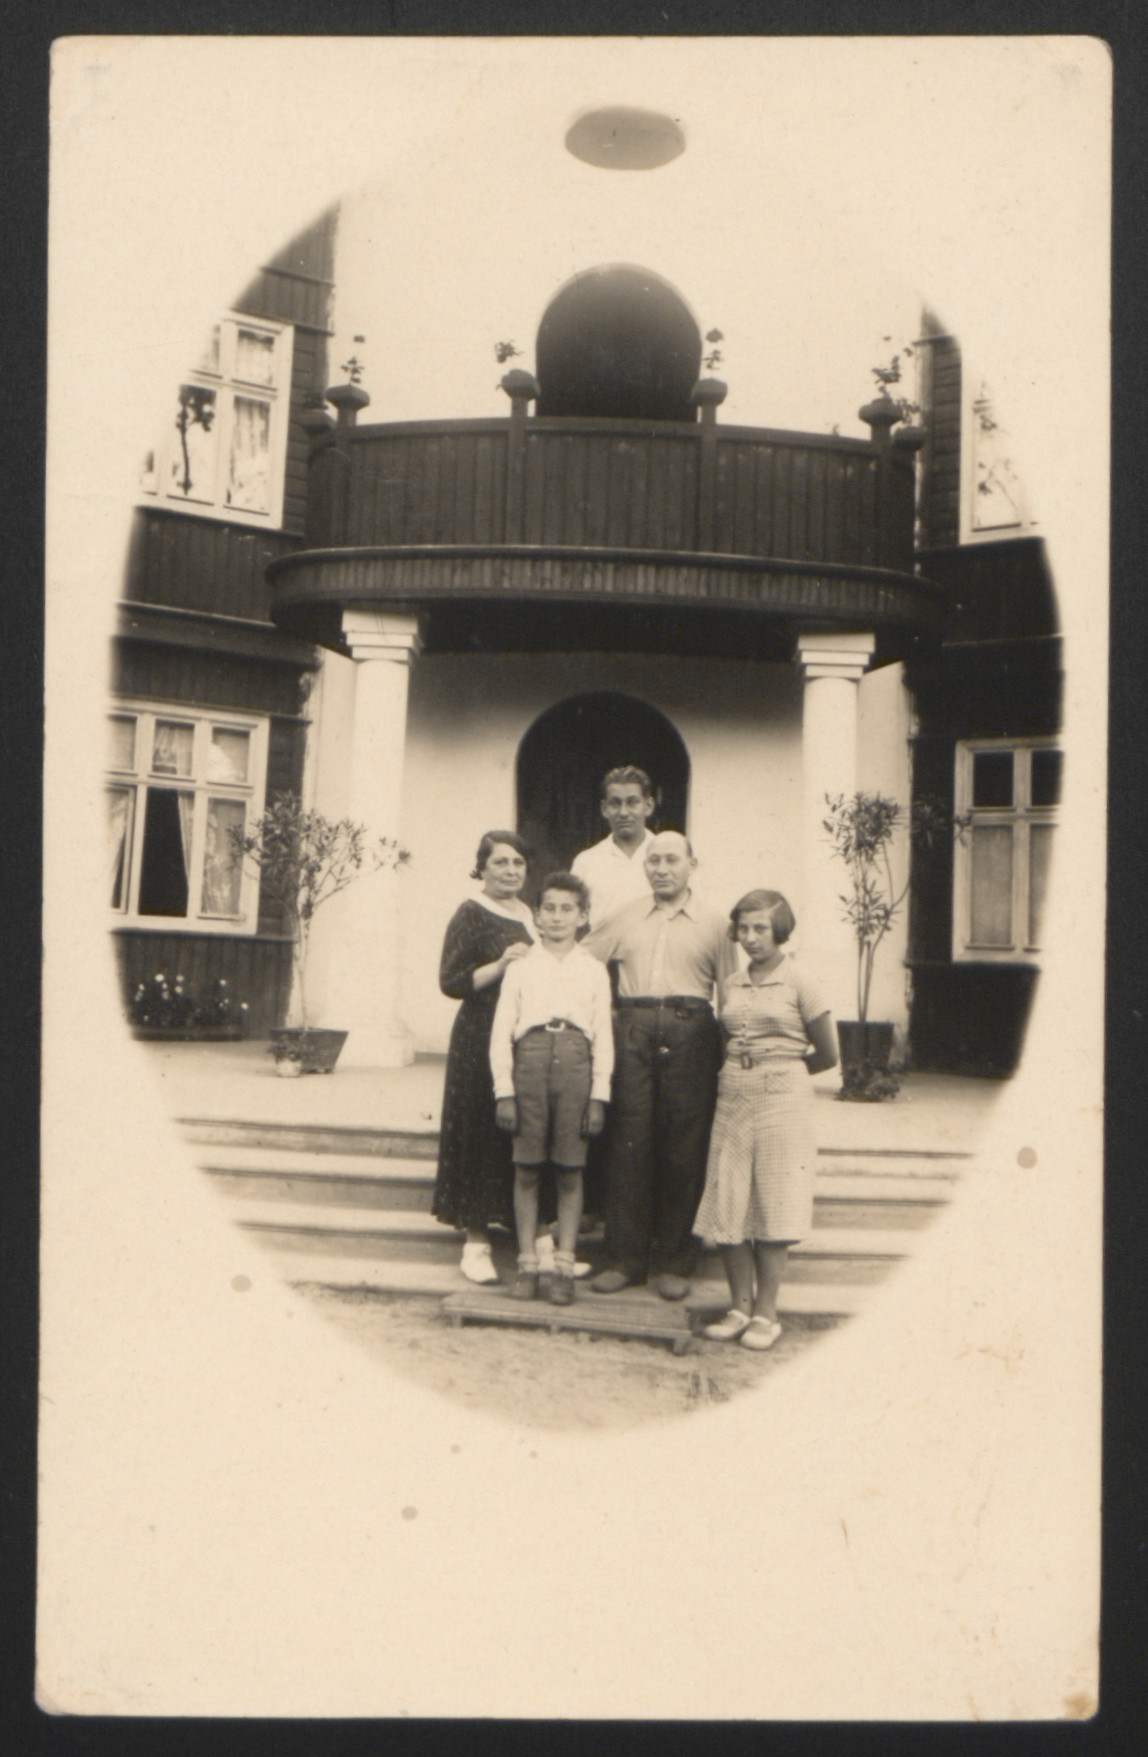 Group portrait of the Holcman family taken during their vacation and sent to the donor's brother, Kazimierz, in Uruguay.    From left: Sara, Jechezkiel, Wladyslaw, the donor, Mojzesz, and Hanka Holcman.